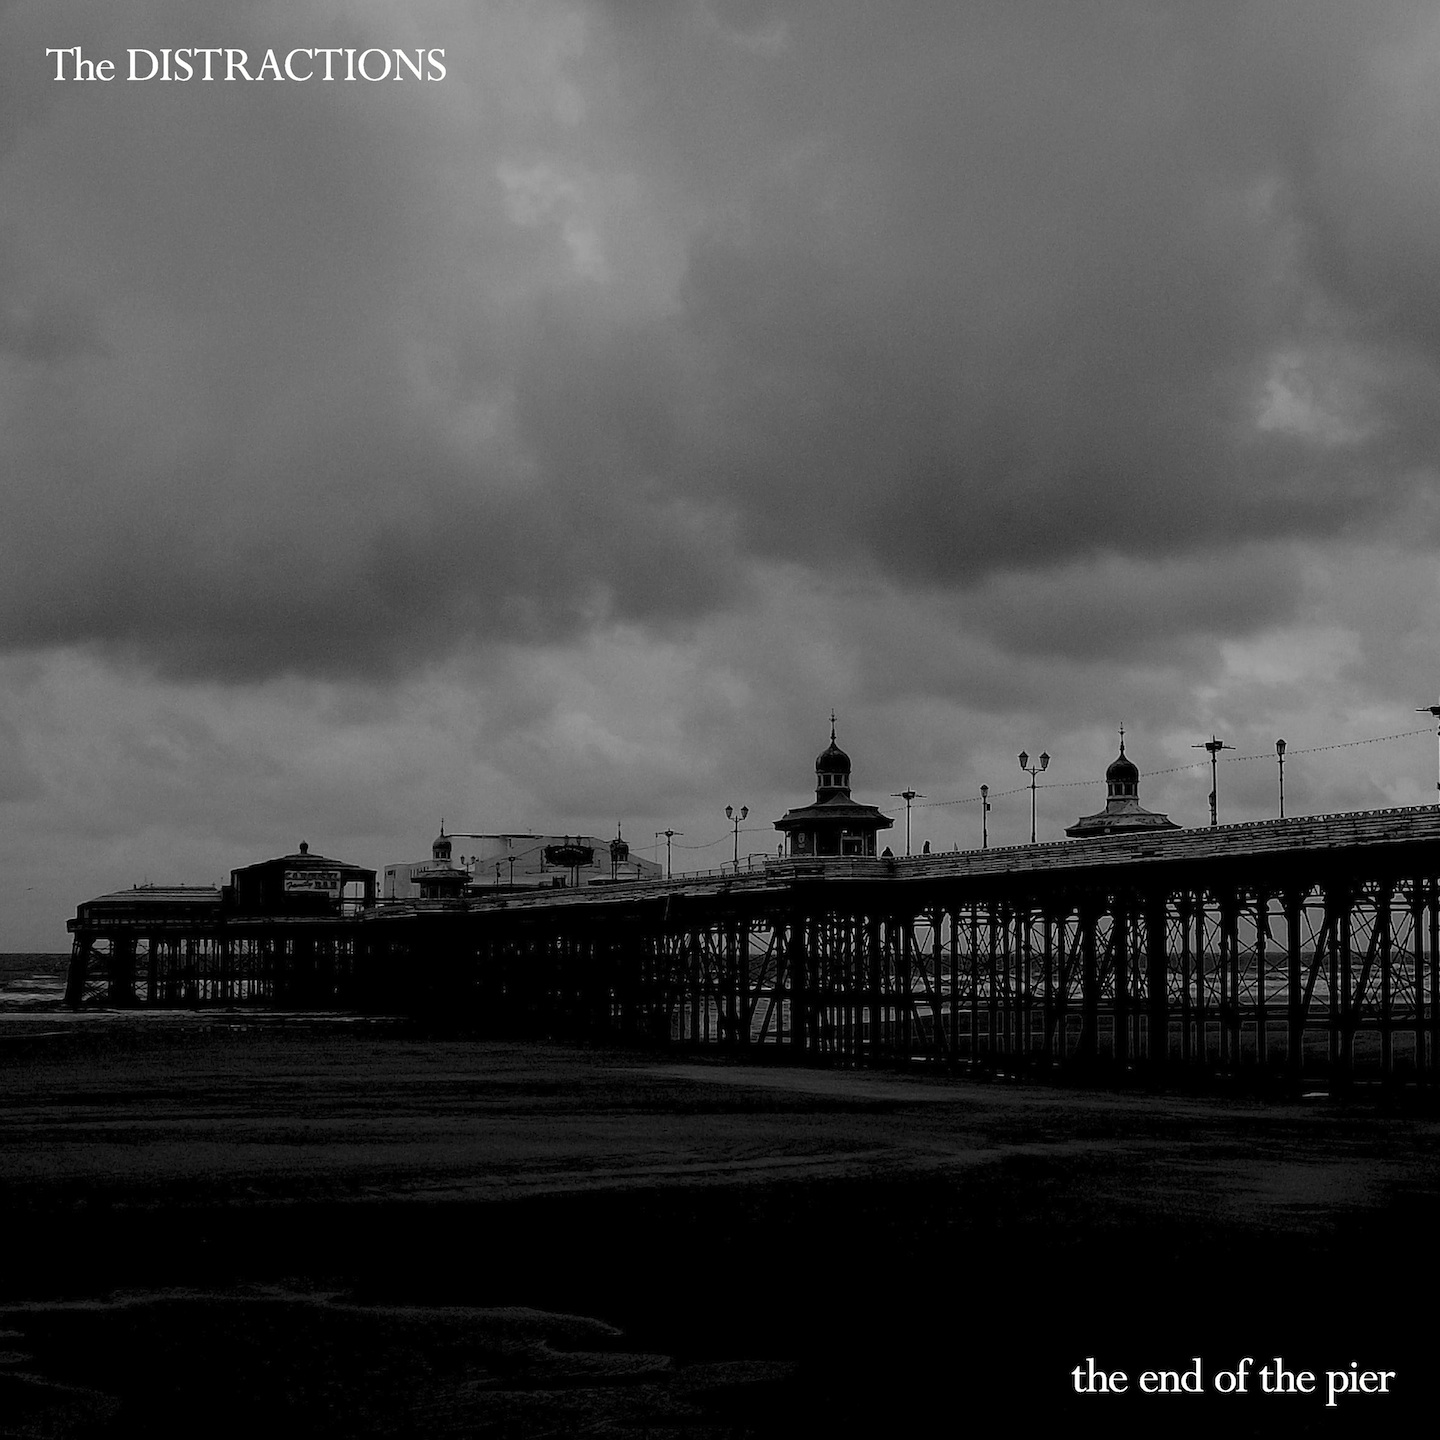 The Distractions: A Band Deliriously Out of Time